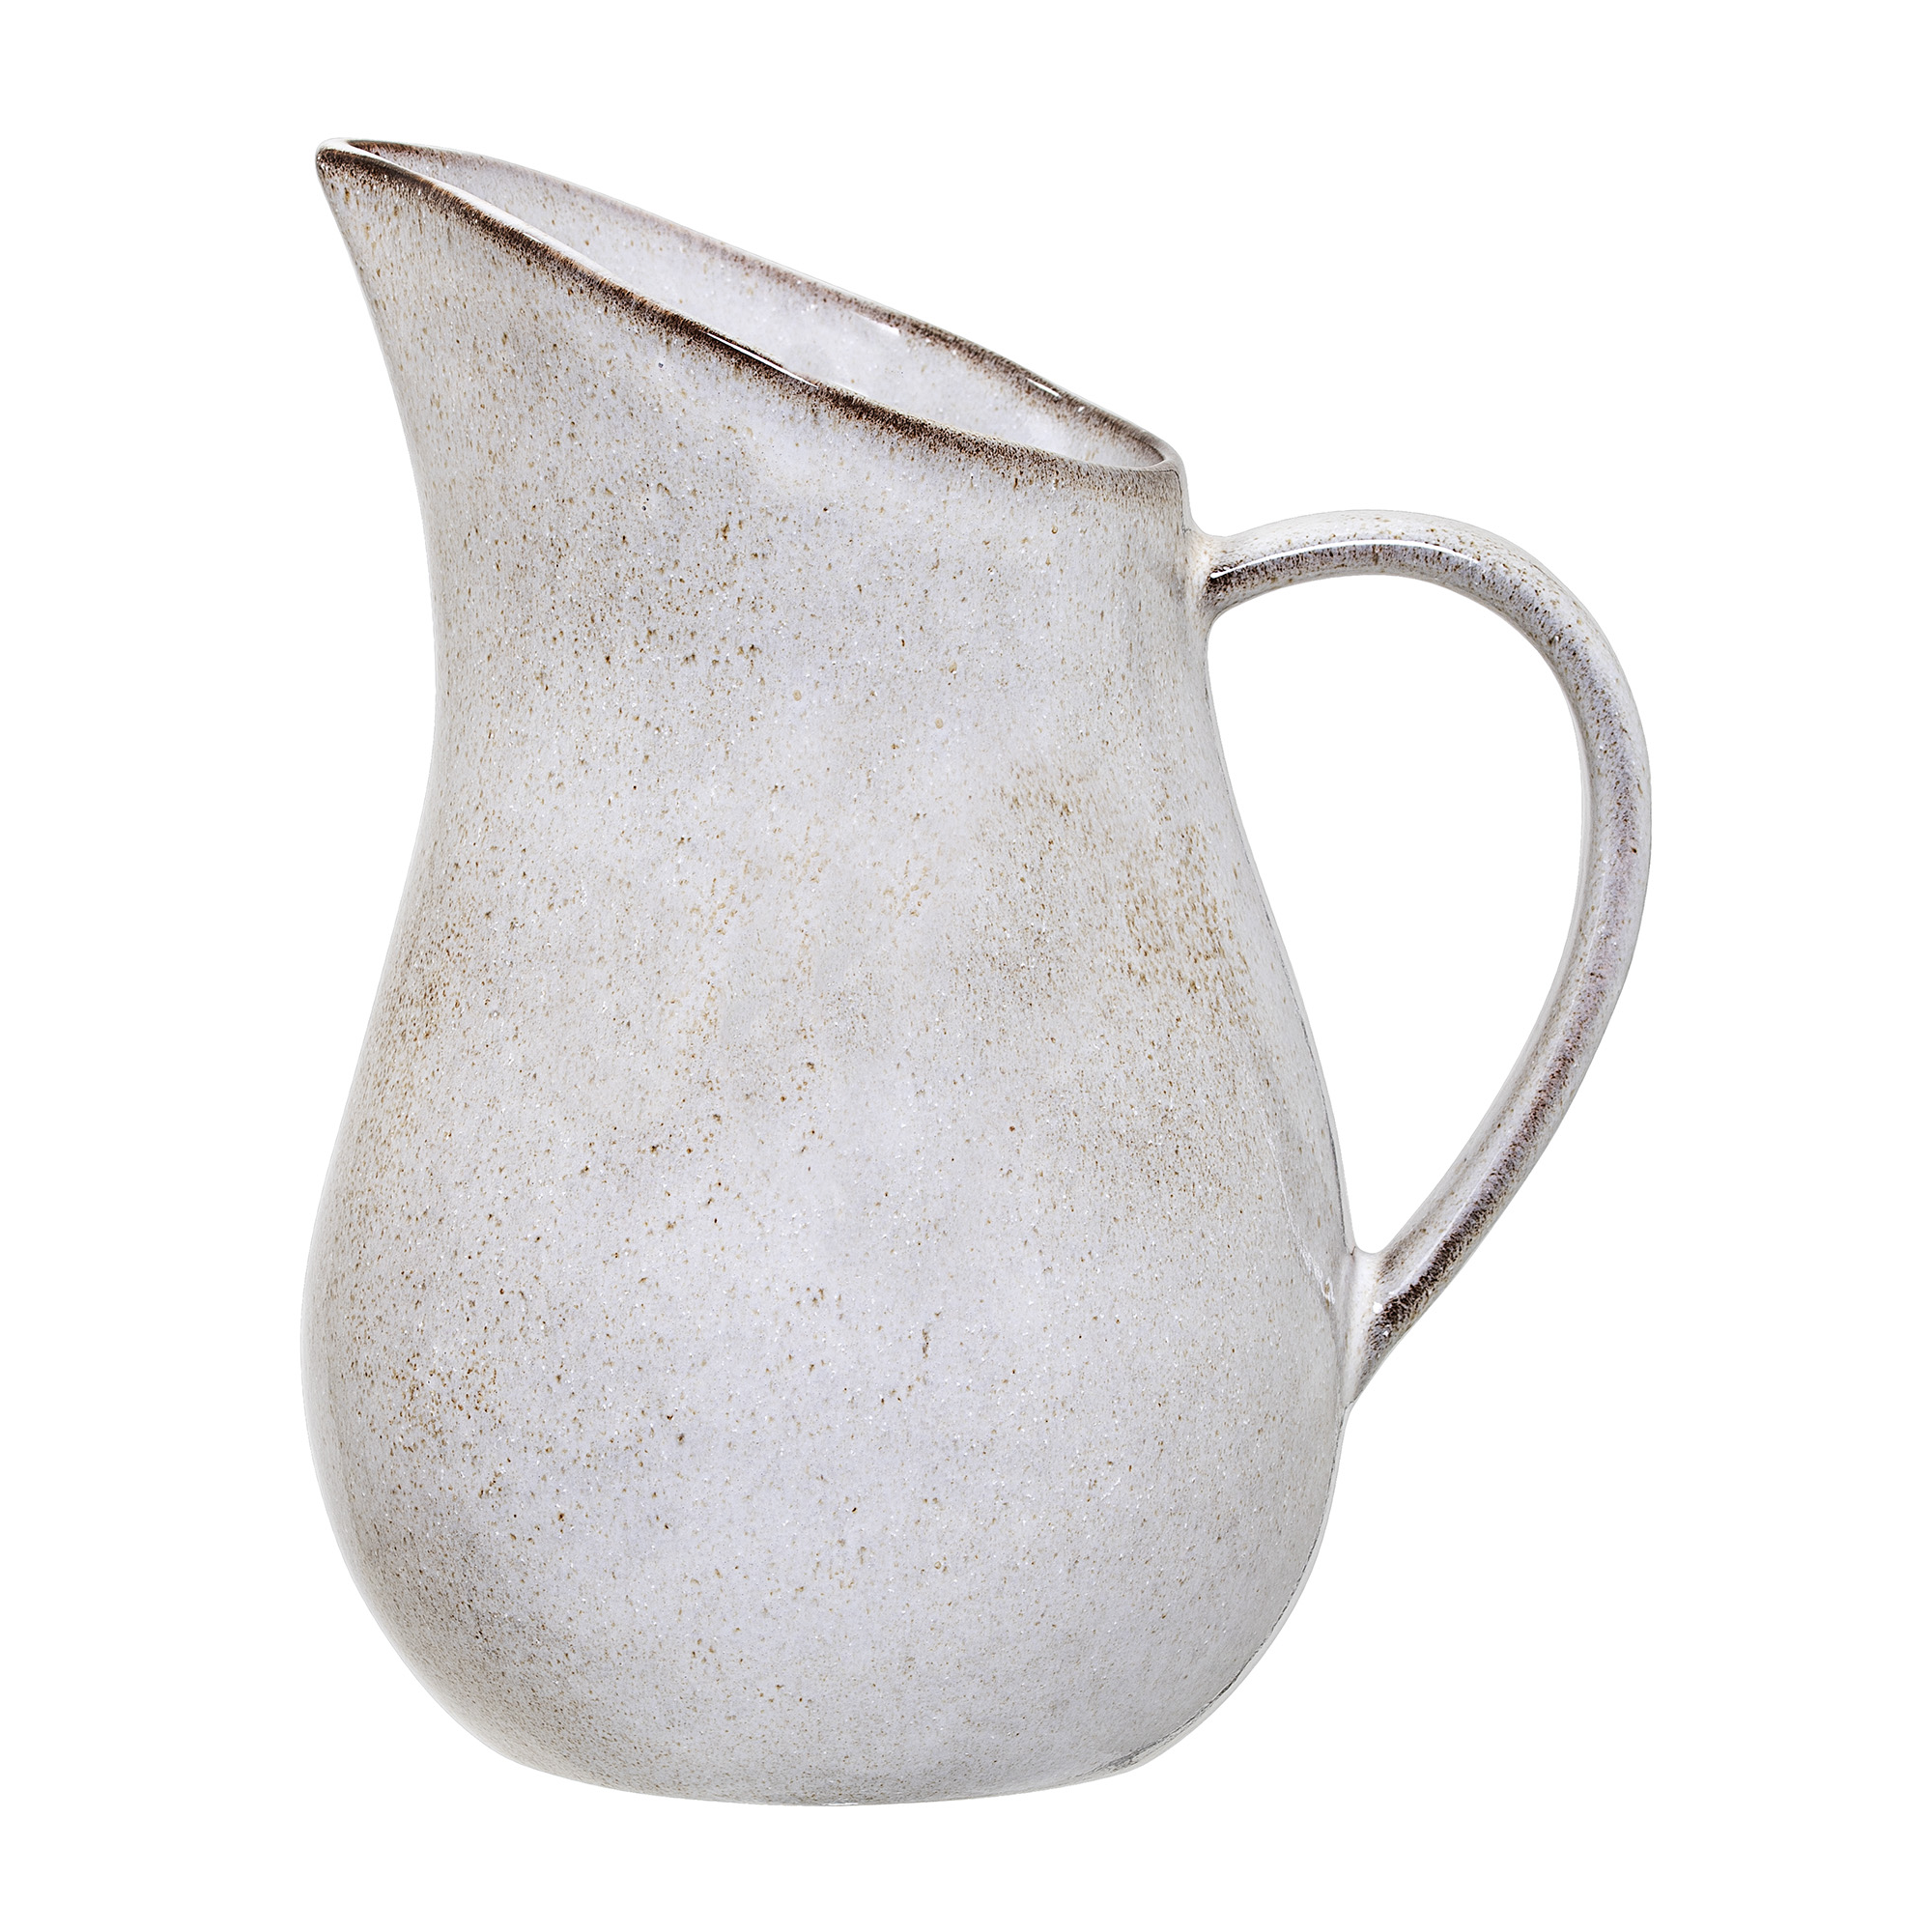 #021   Brown Stoneware Glazed Water Jug   15cm x H33cm Hire Price - £12 Minimum Order 5 Current Stock Available 12